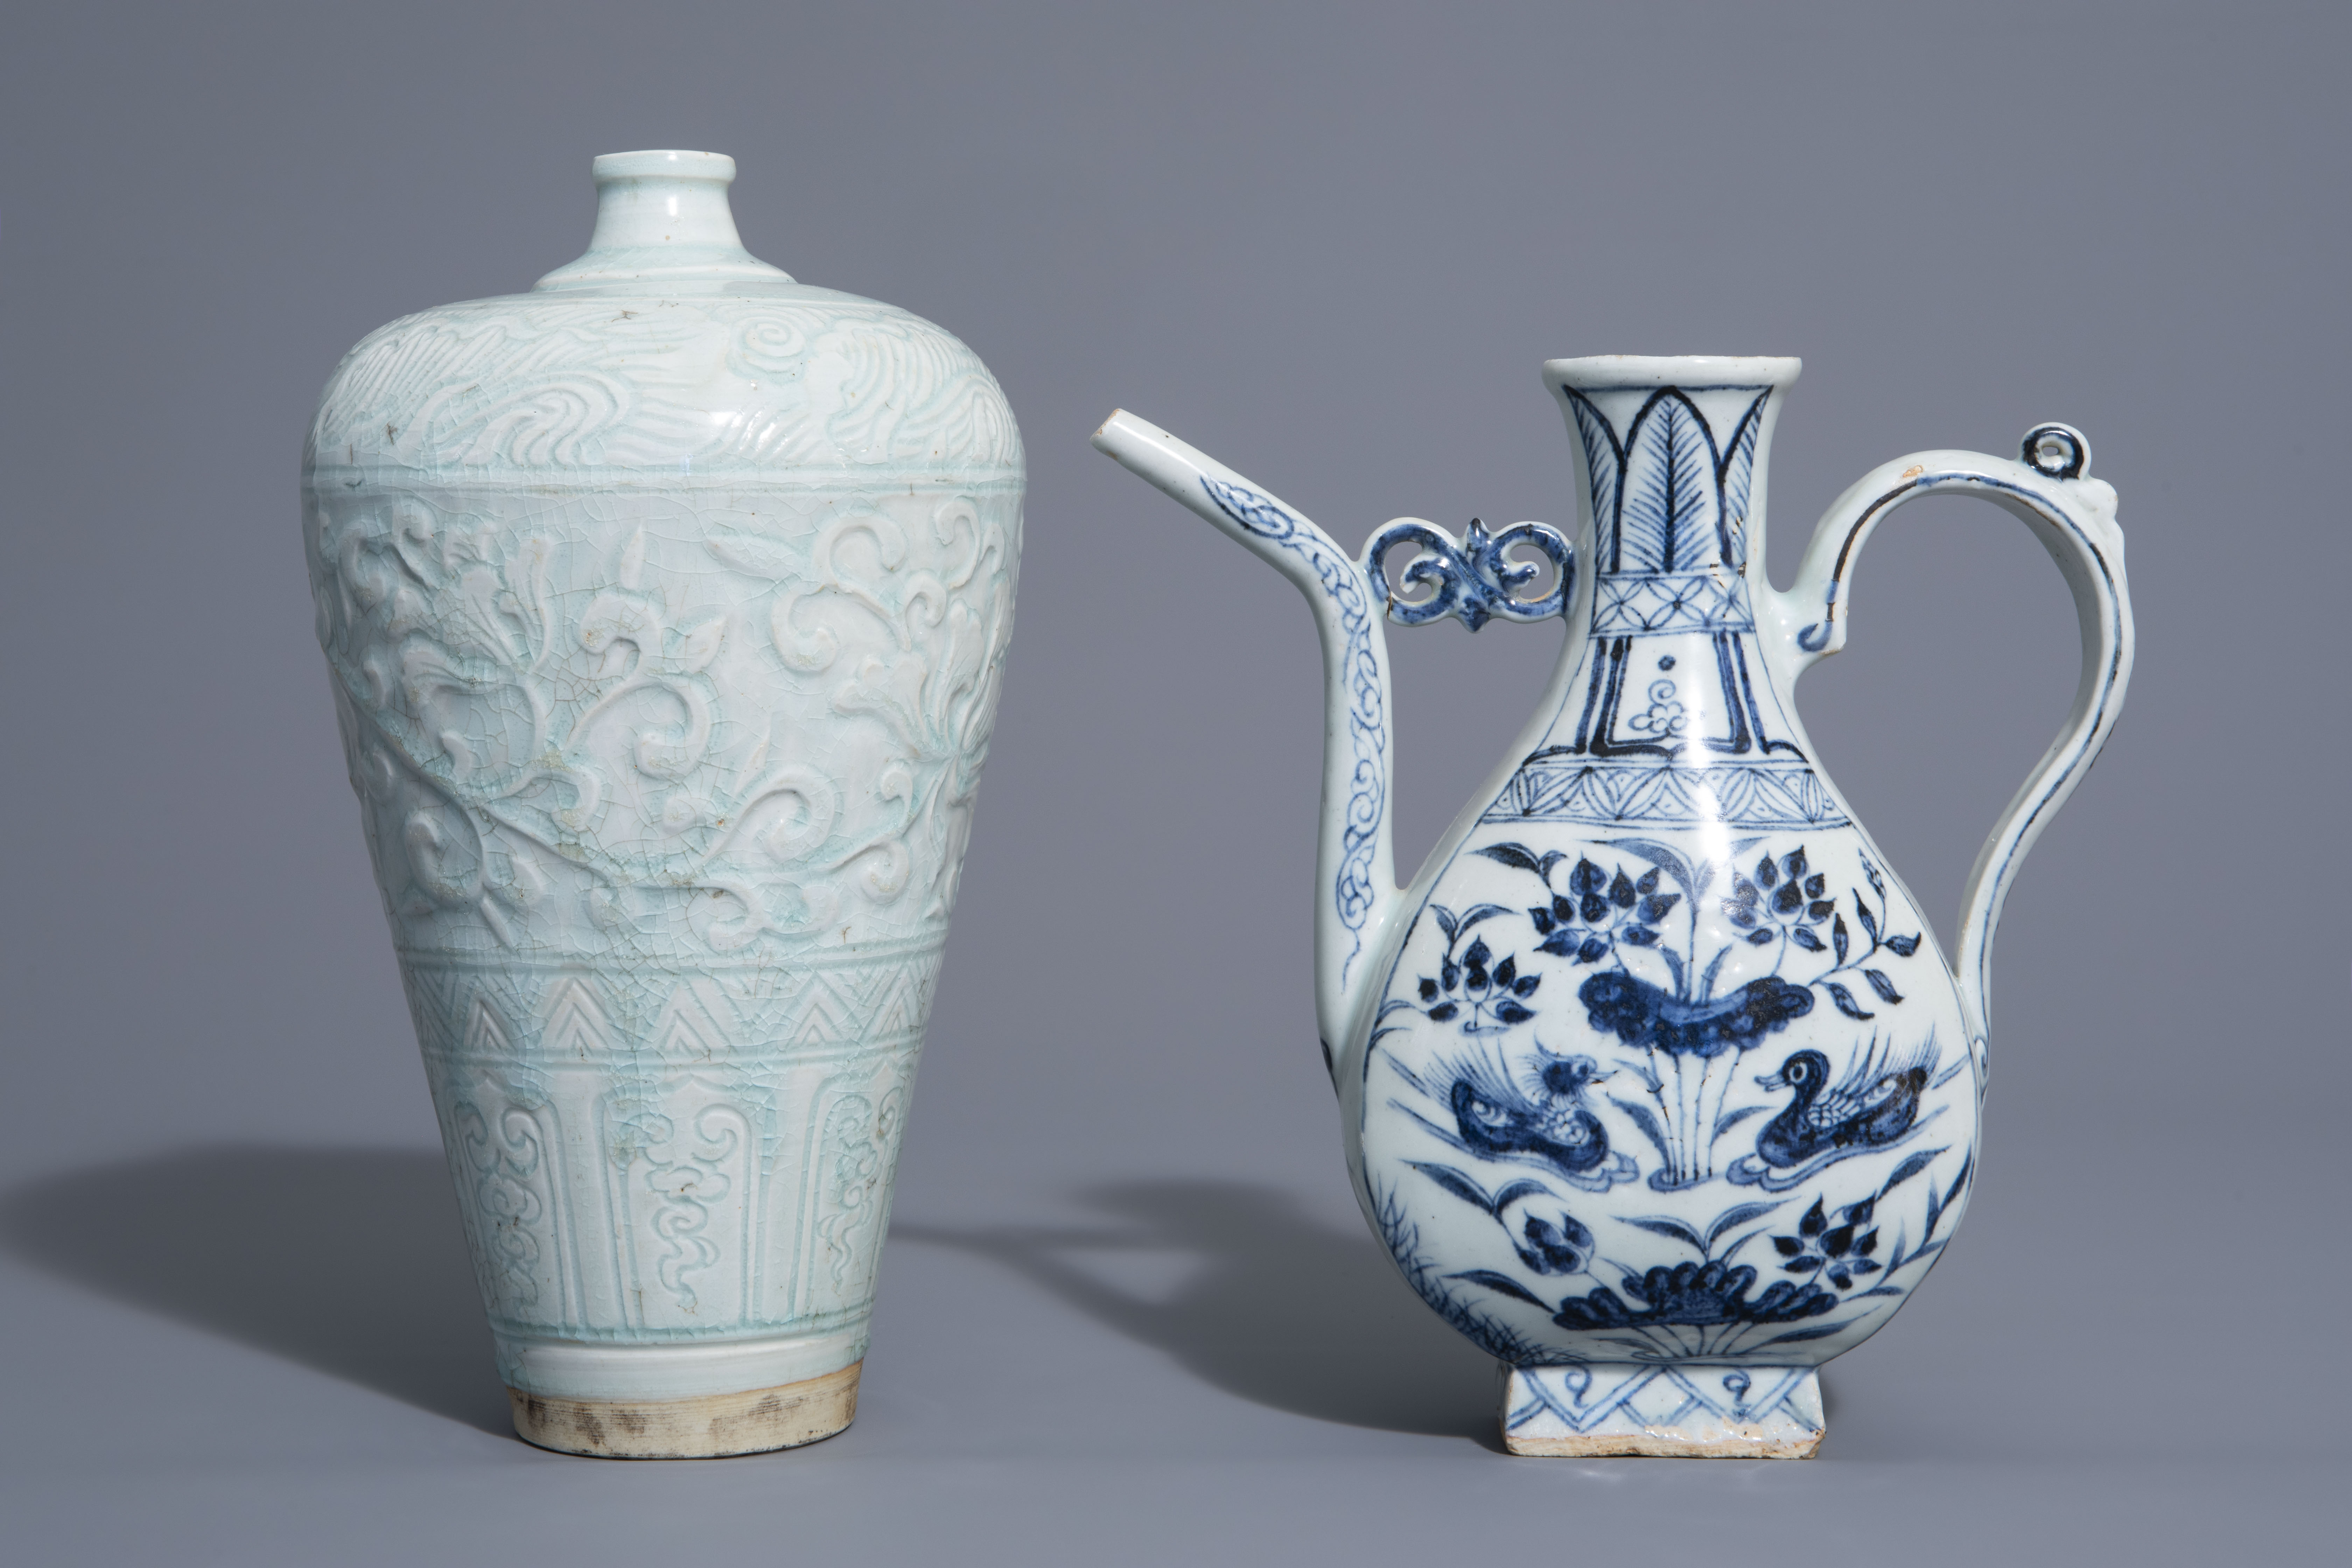 A Chinese blue and white jug and a qingbai vase in Yuan style, 19th/20th C. - Image 3 of 6